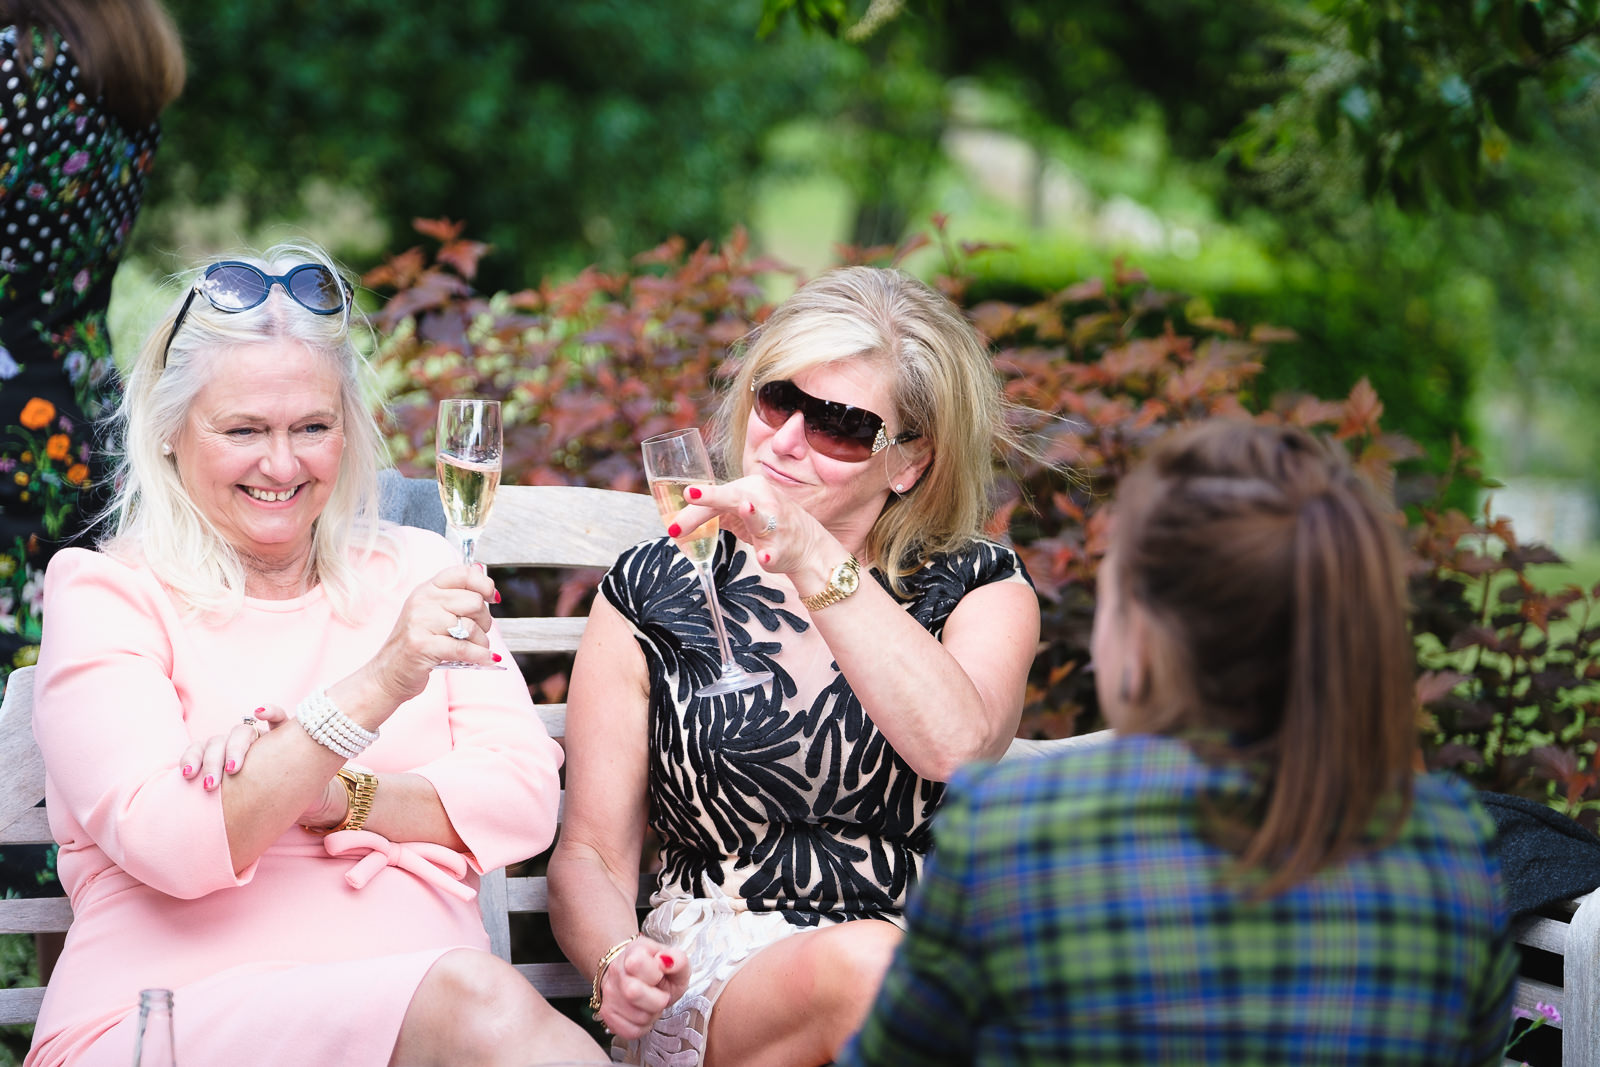 Wedding photography with women having fun and enjoying a glass of champagne